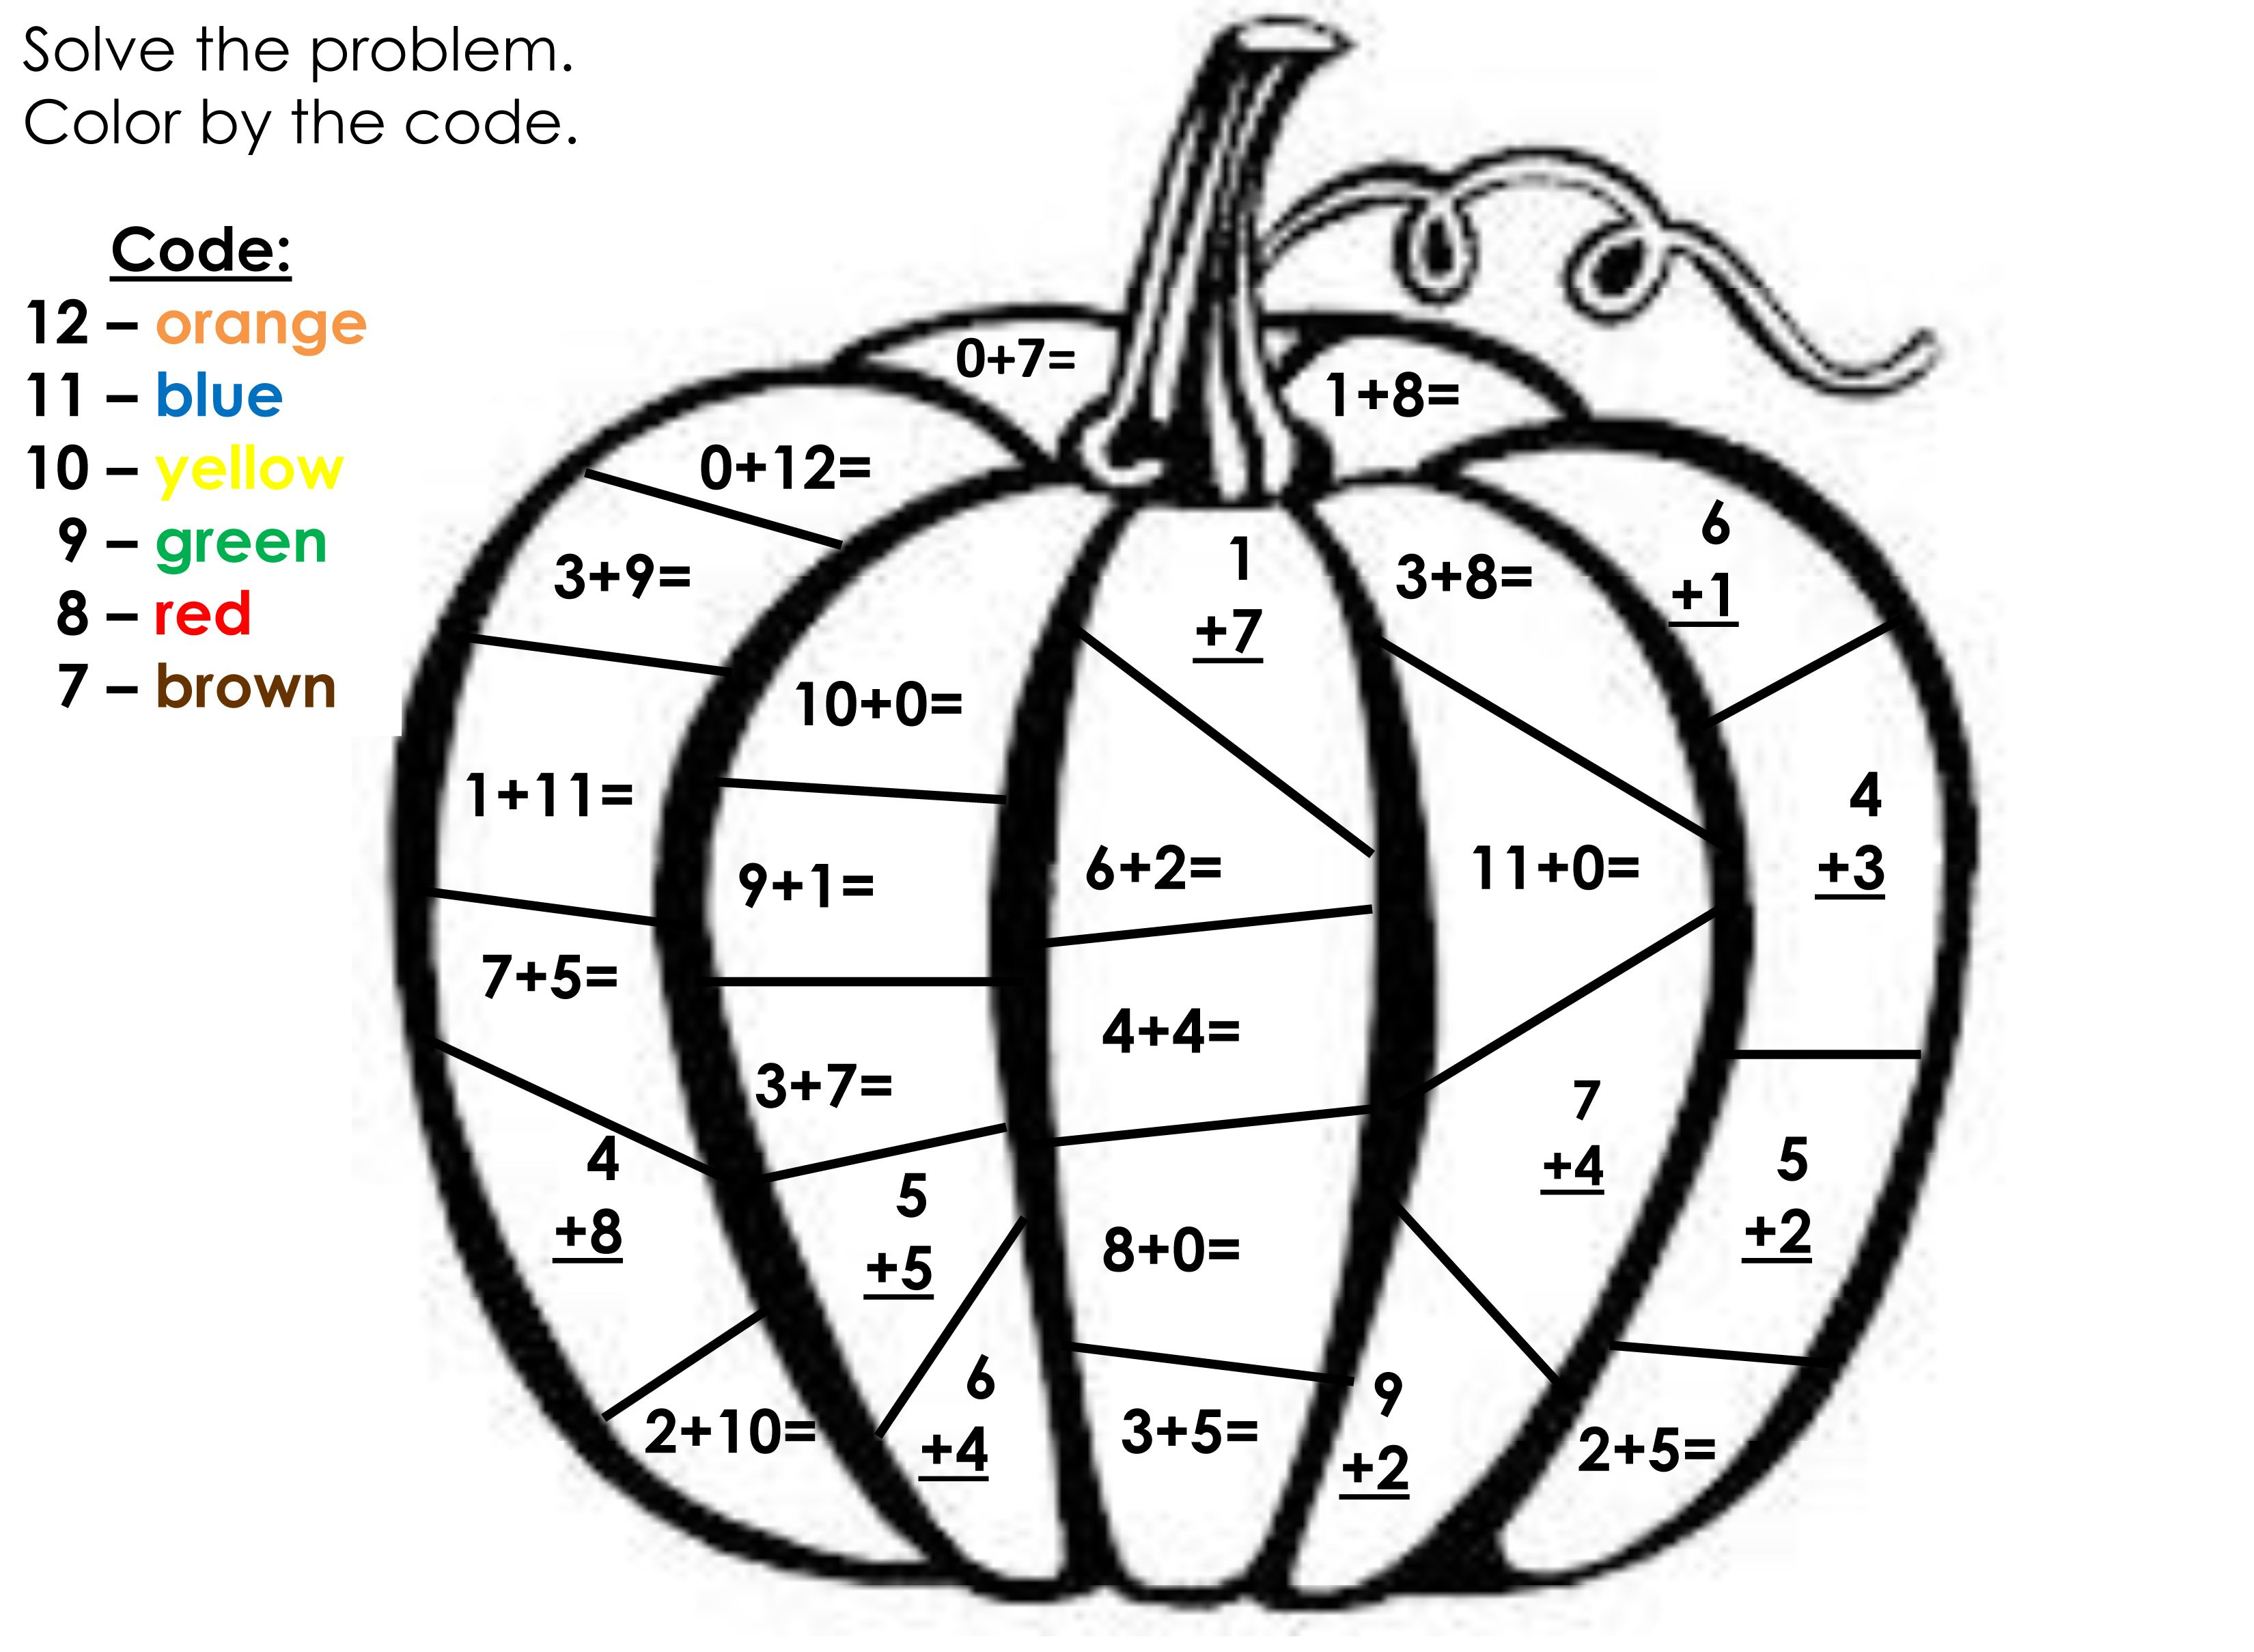 Coloring pages for double digit subtraction - My Daughter Had This For An Extra Activity For Math So I Wanted To Share